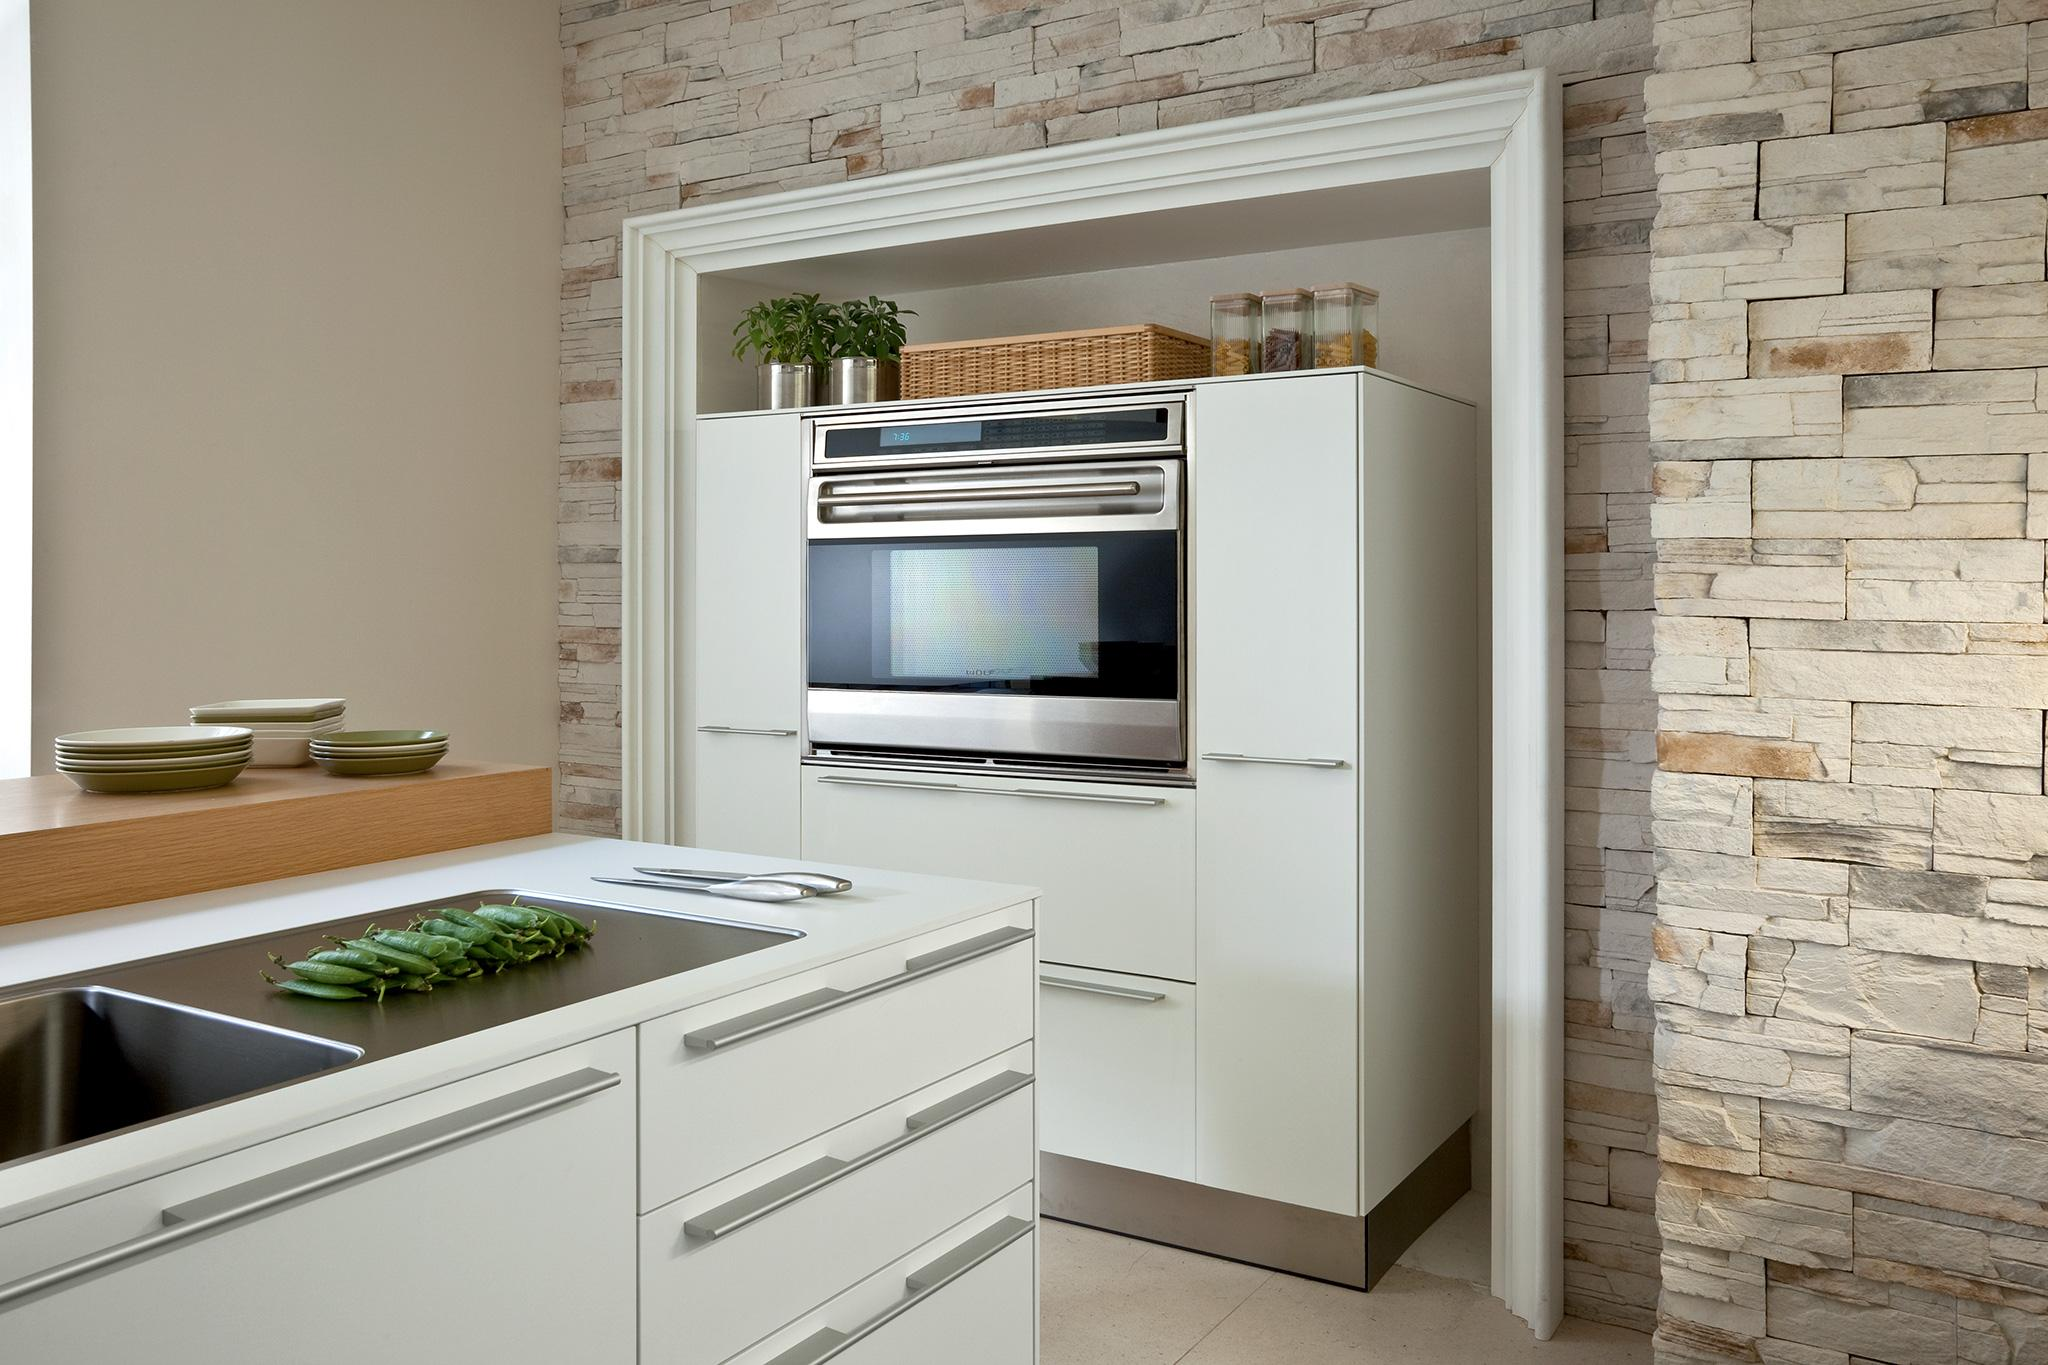 36 Built In L Series Oven